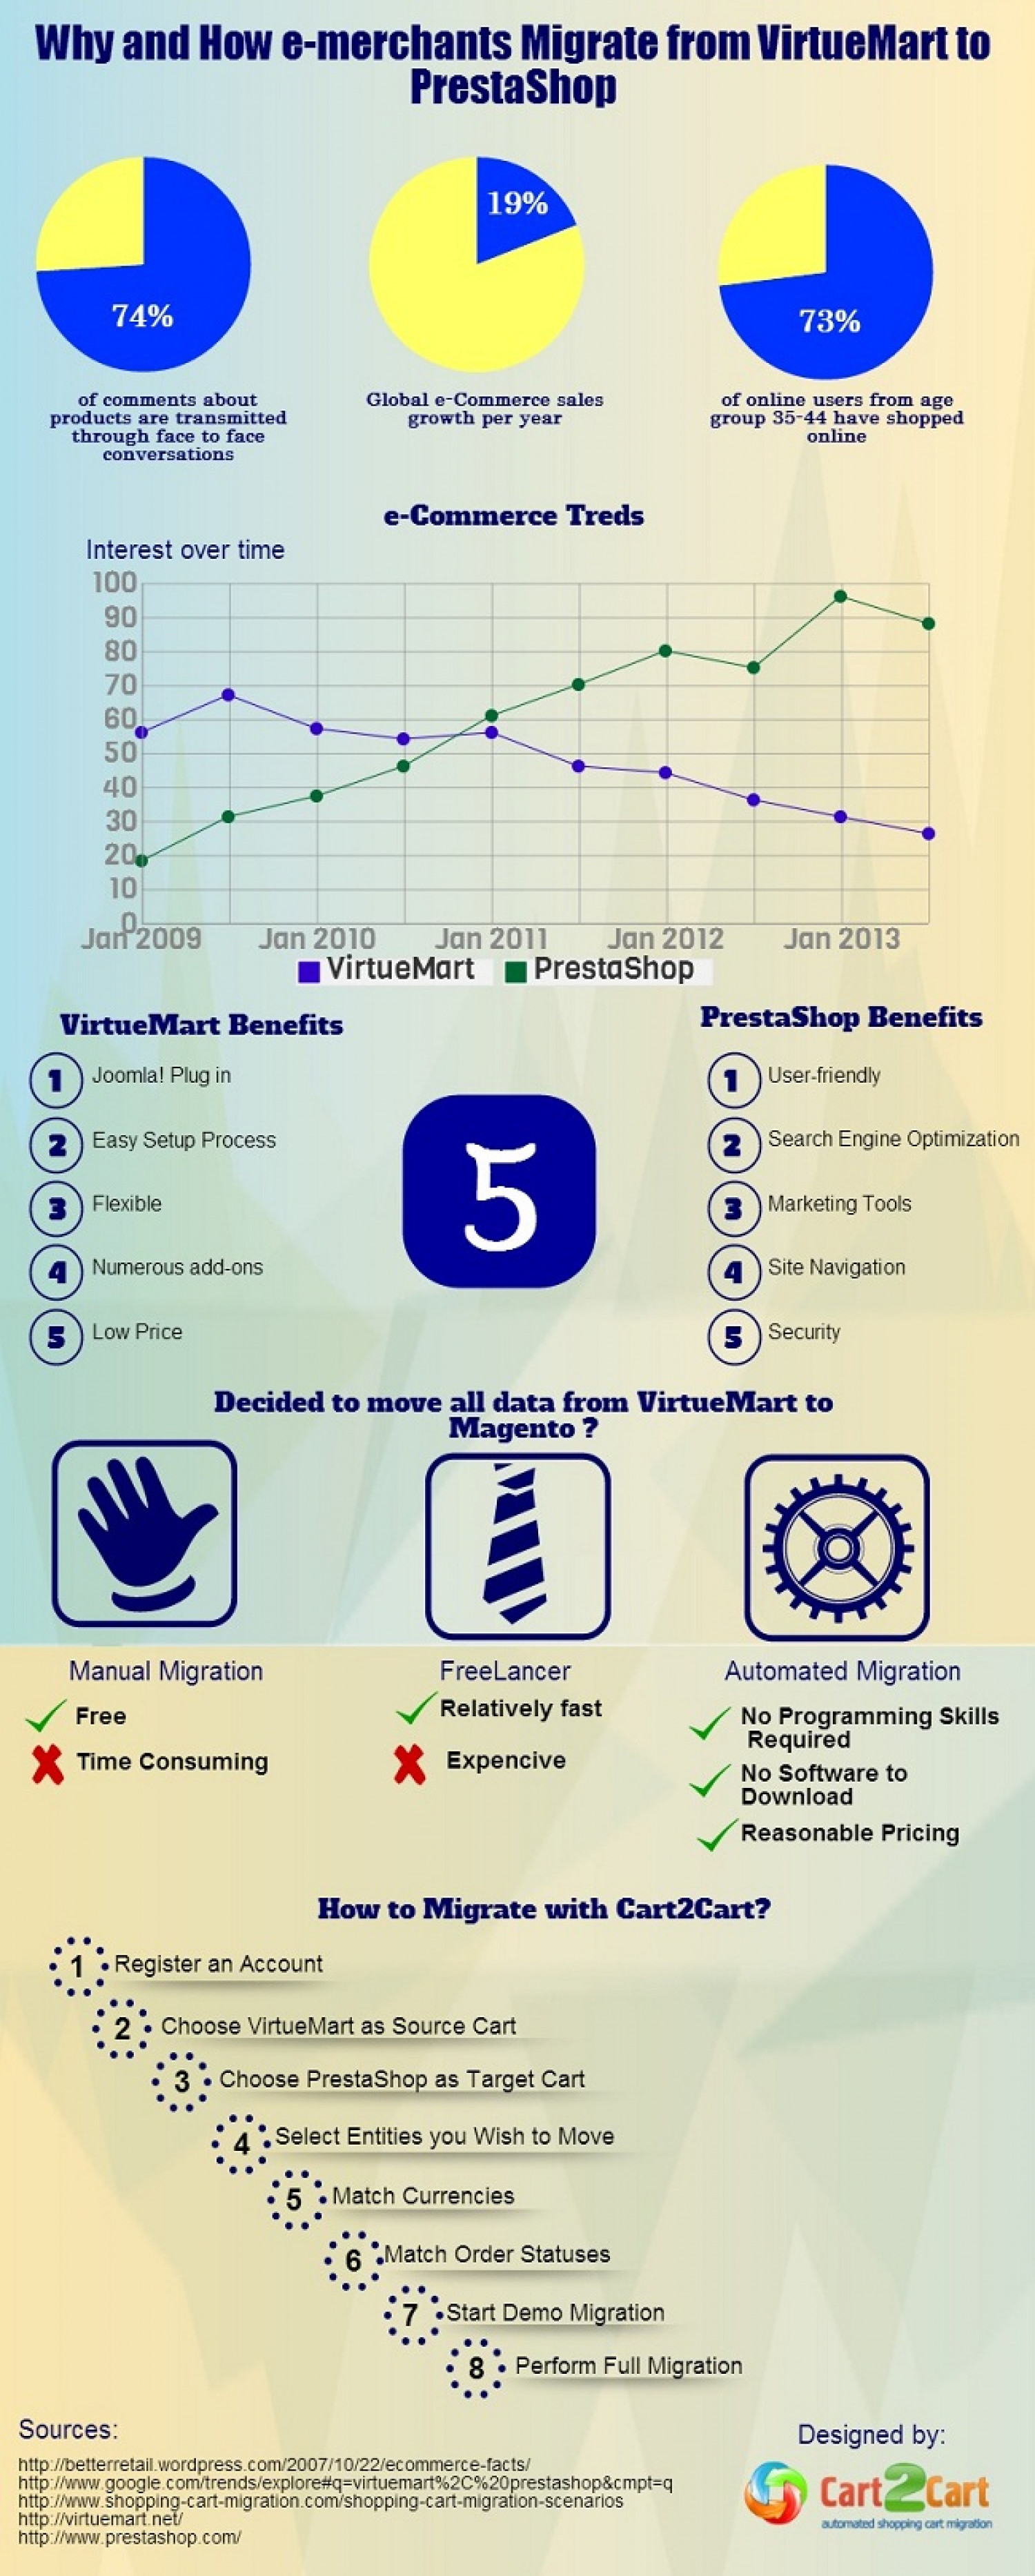 Why and How e-merchants Migrate from VirtueMart to PrestaShop Infographic